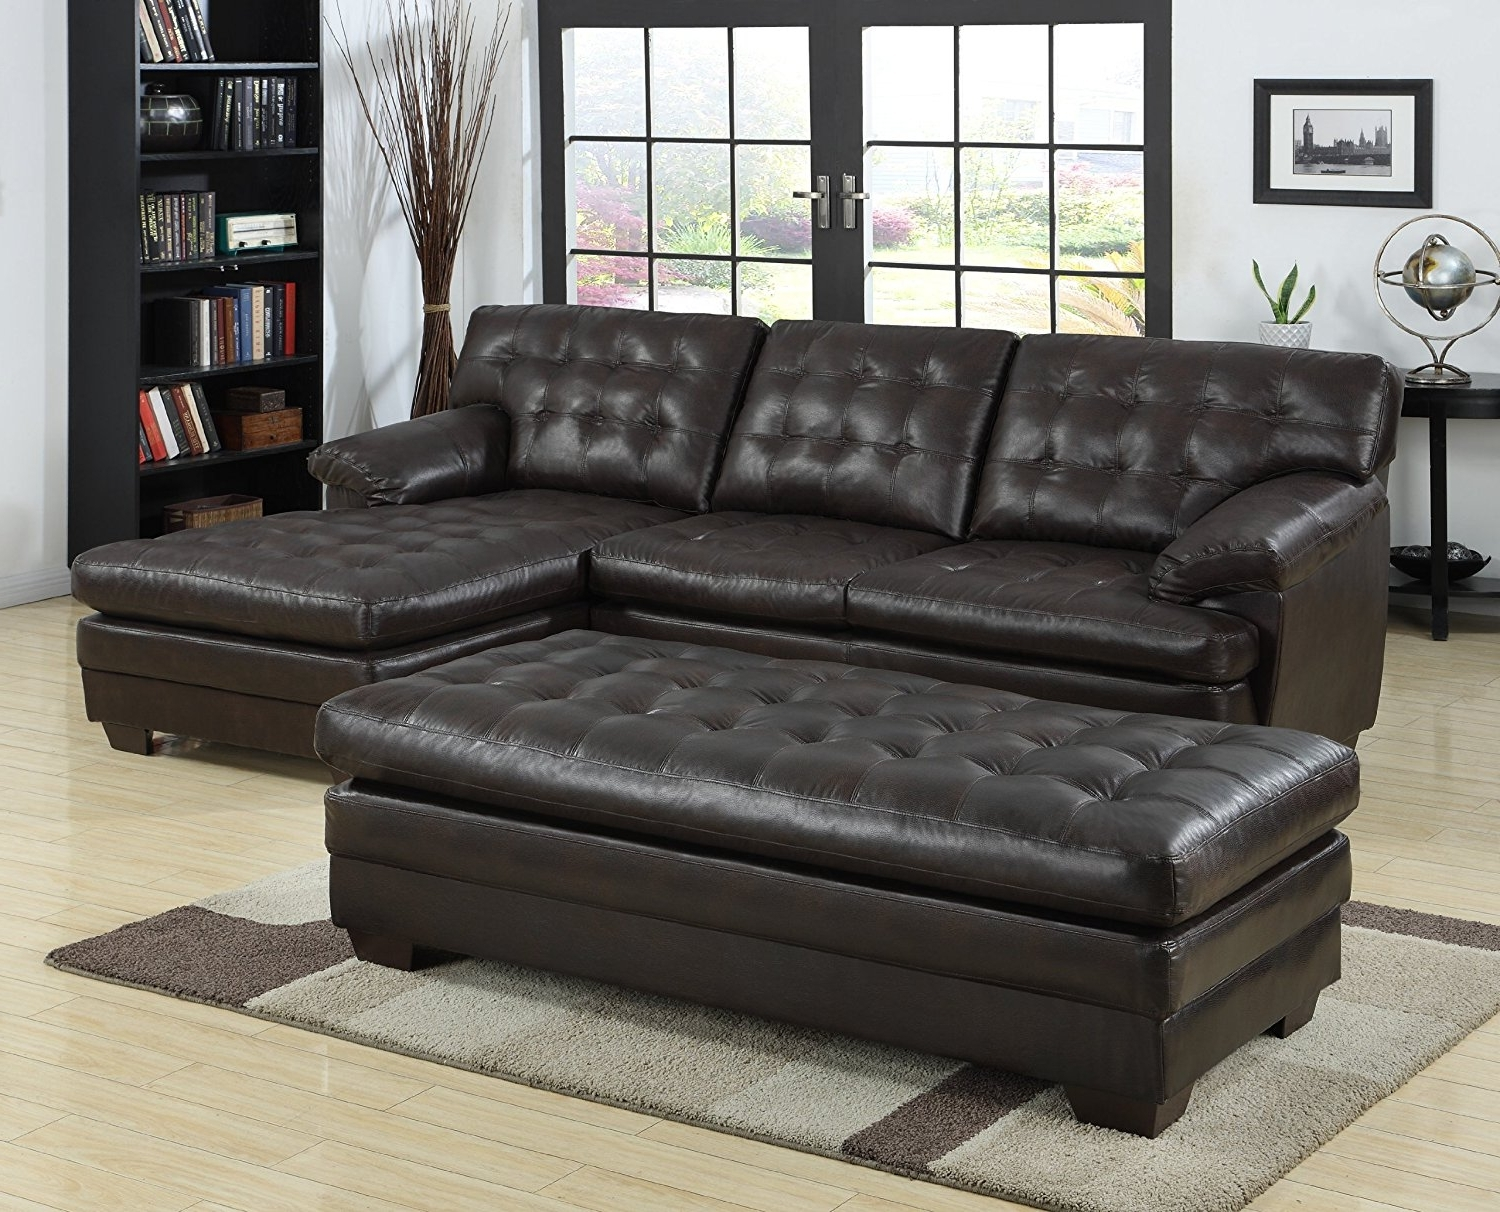 Preferred Amazon: Homelegance 9739 Channel Tufted 2 Piece Sectional Sofa Inside Sectional Couches With Chaise (View 15 of 15)